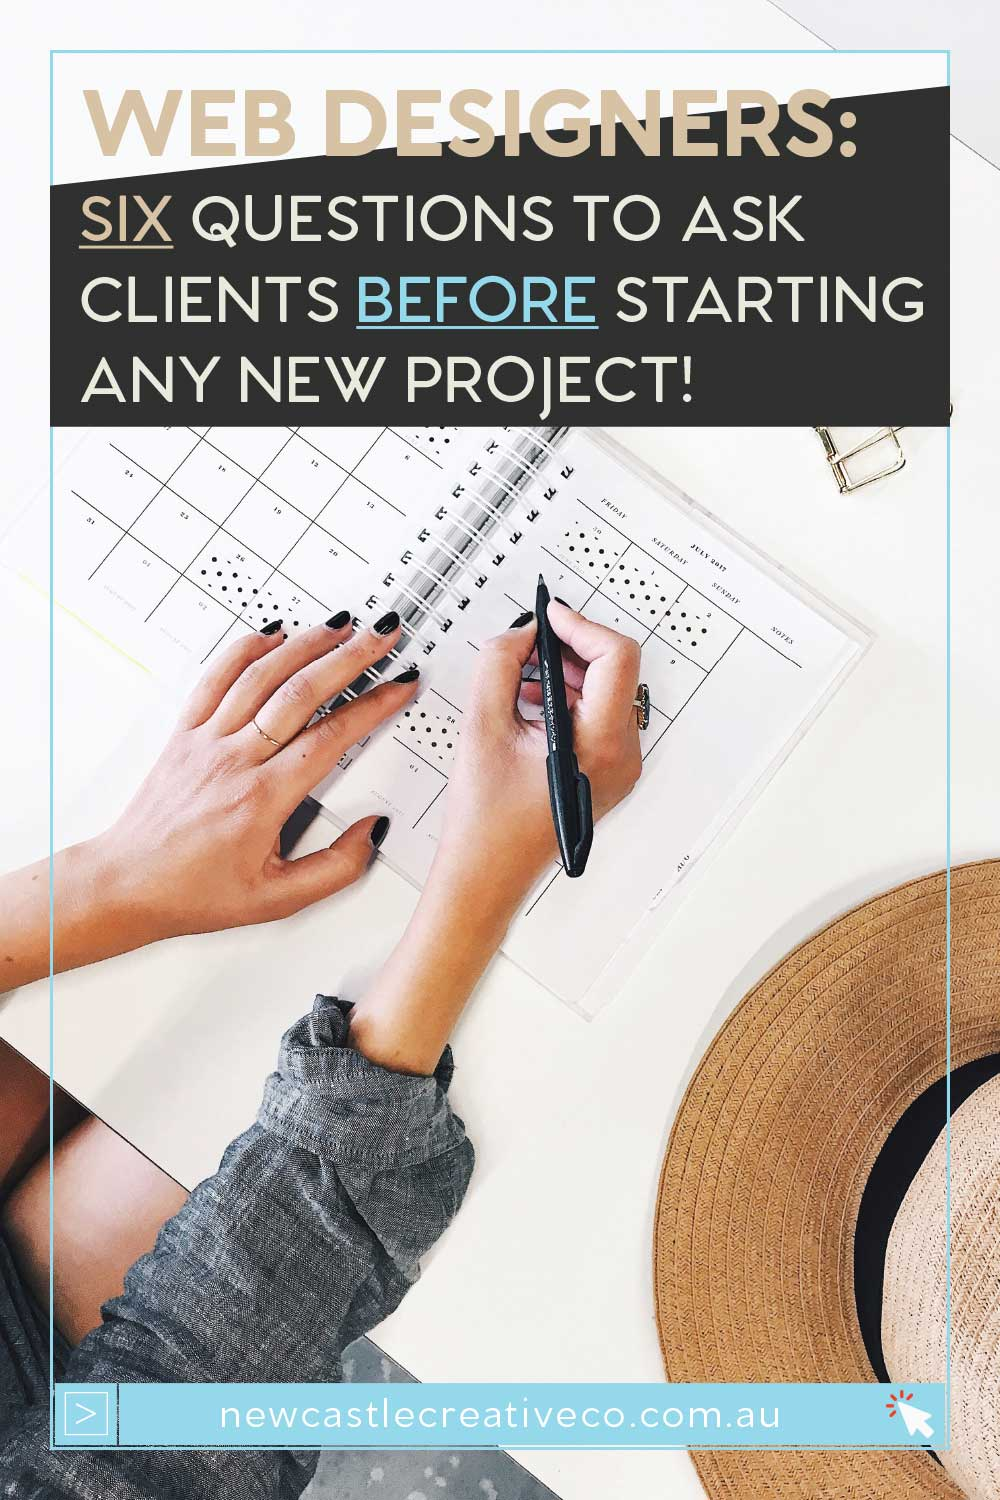 Stupendous Web Designers Six Questions To Ask Clients Before Starting Beutiful Home Inspiration Truamahrainfo